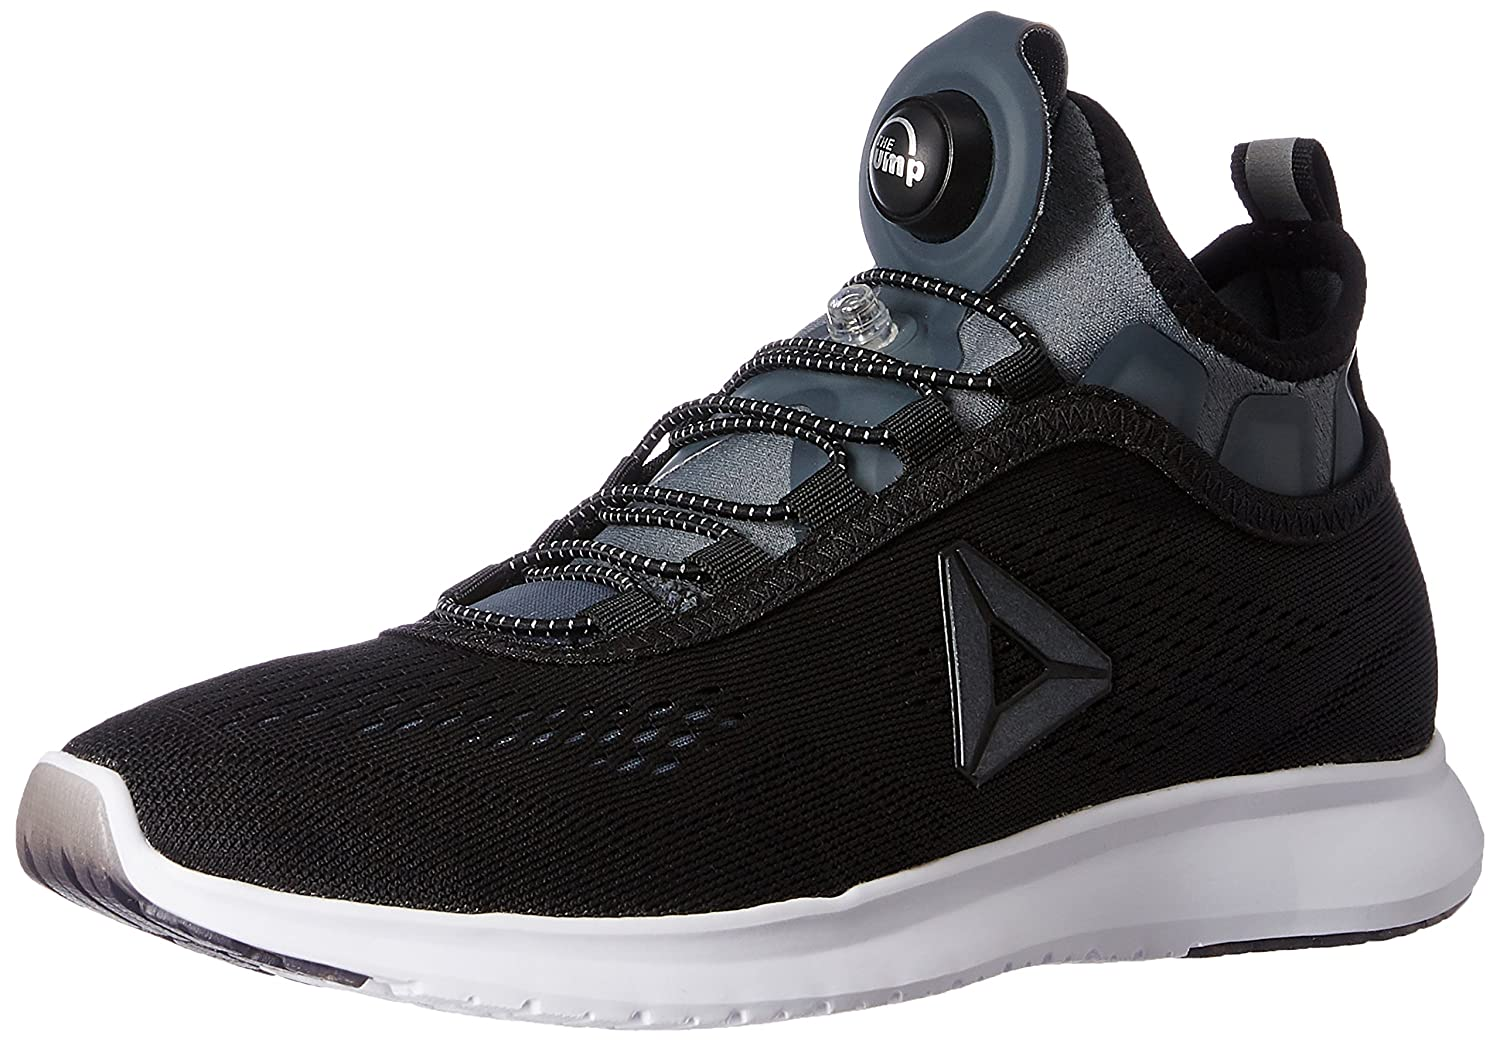 Reebok Damen Pump Plus Tech Laufschuhe